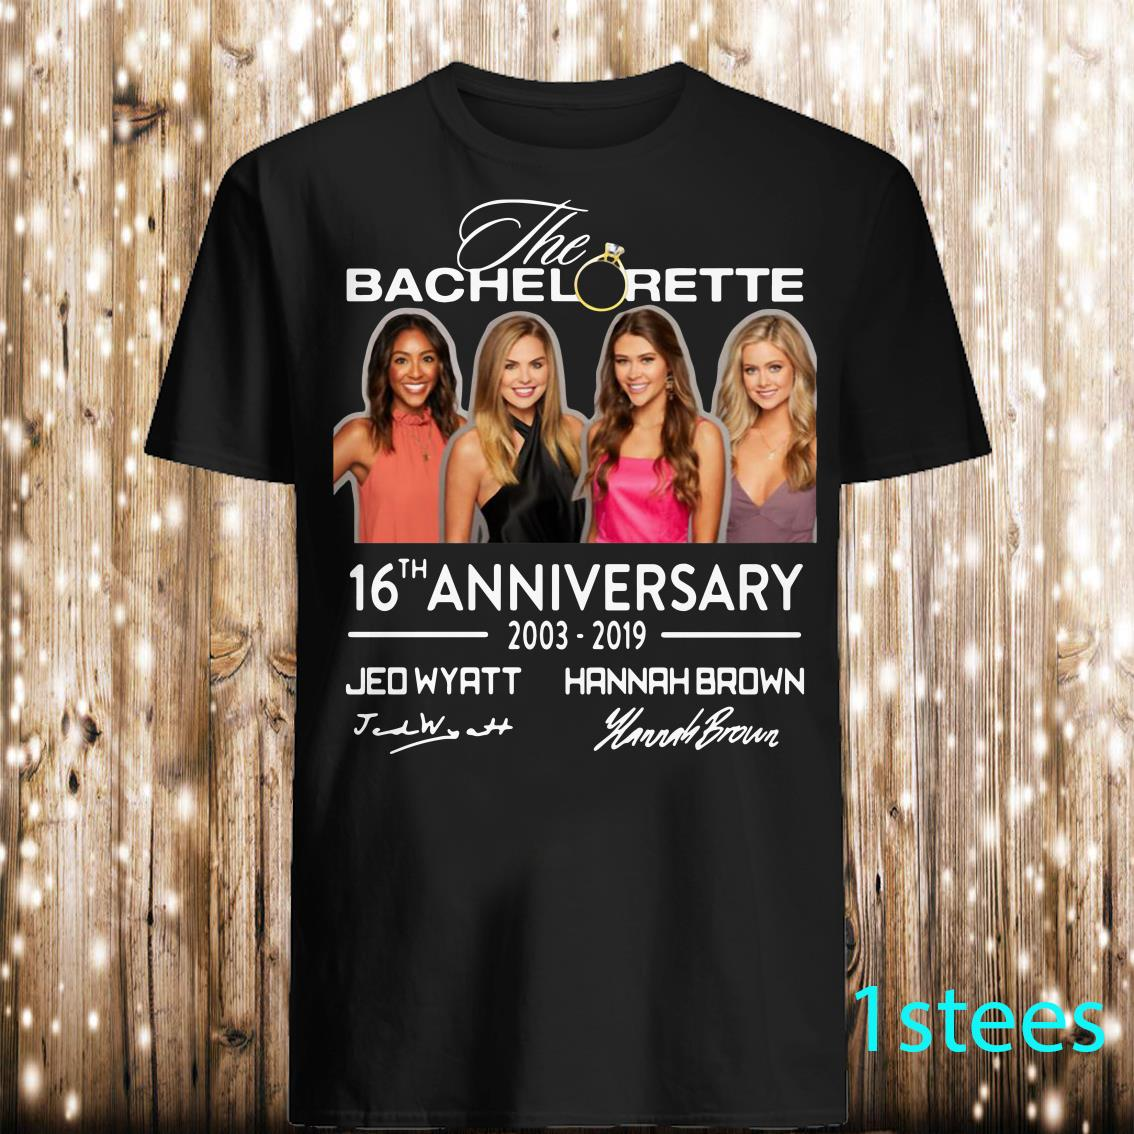 The Bachelorette 16th Anniversary Jed Wyatt Hannah Brown Shirt